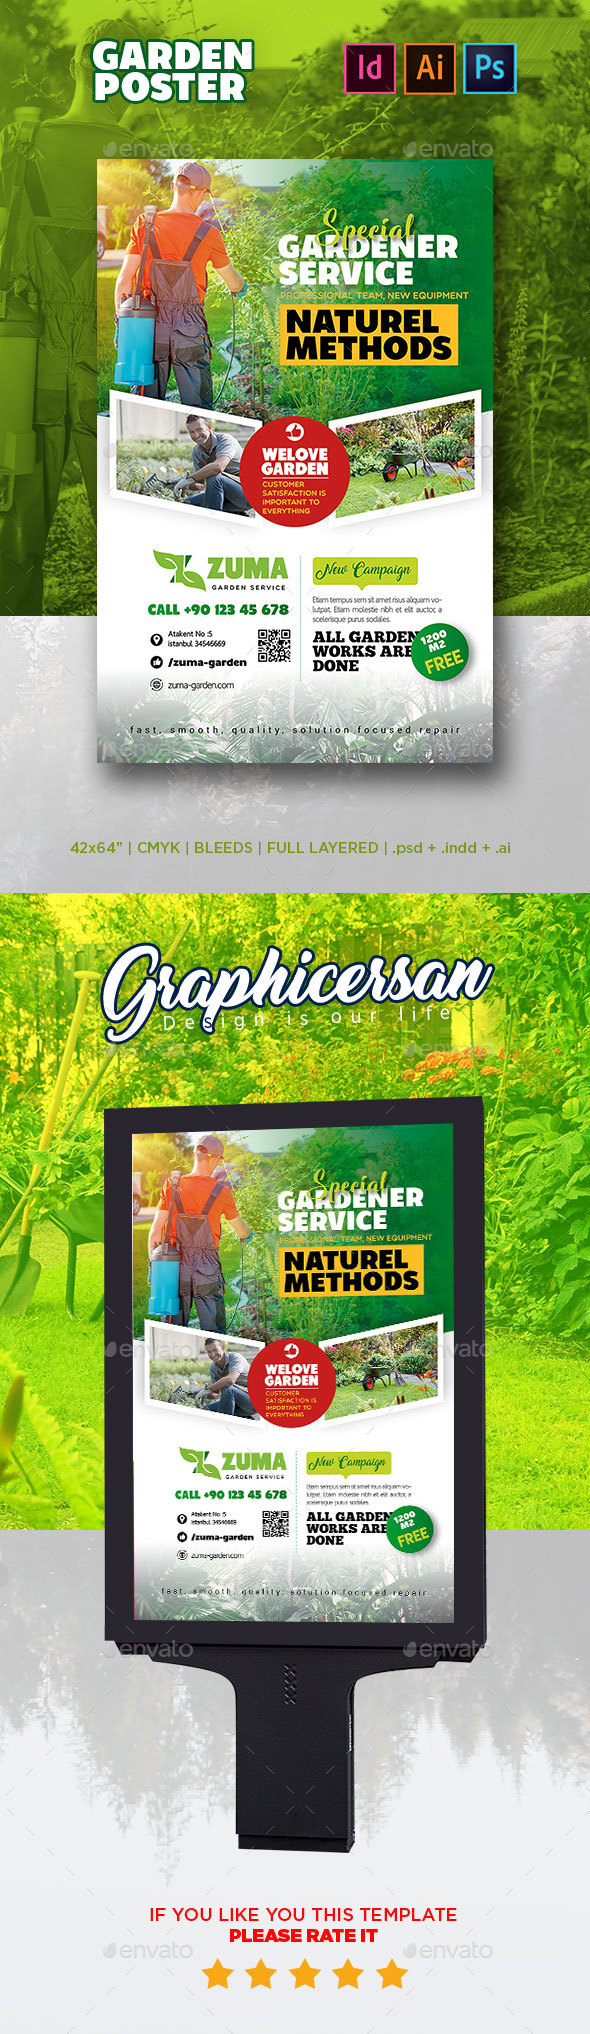 Garden Poster Template - Signage Print Templates